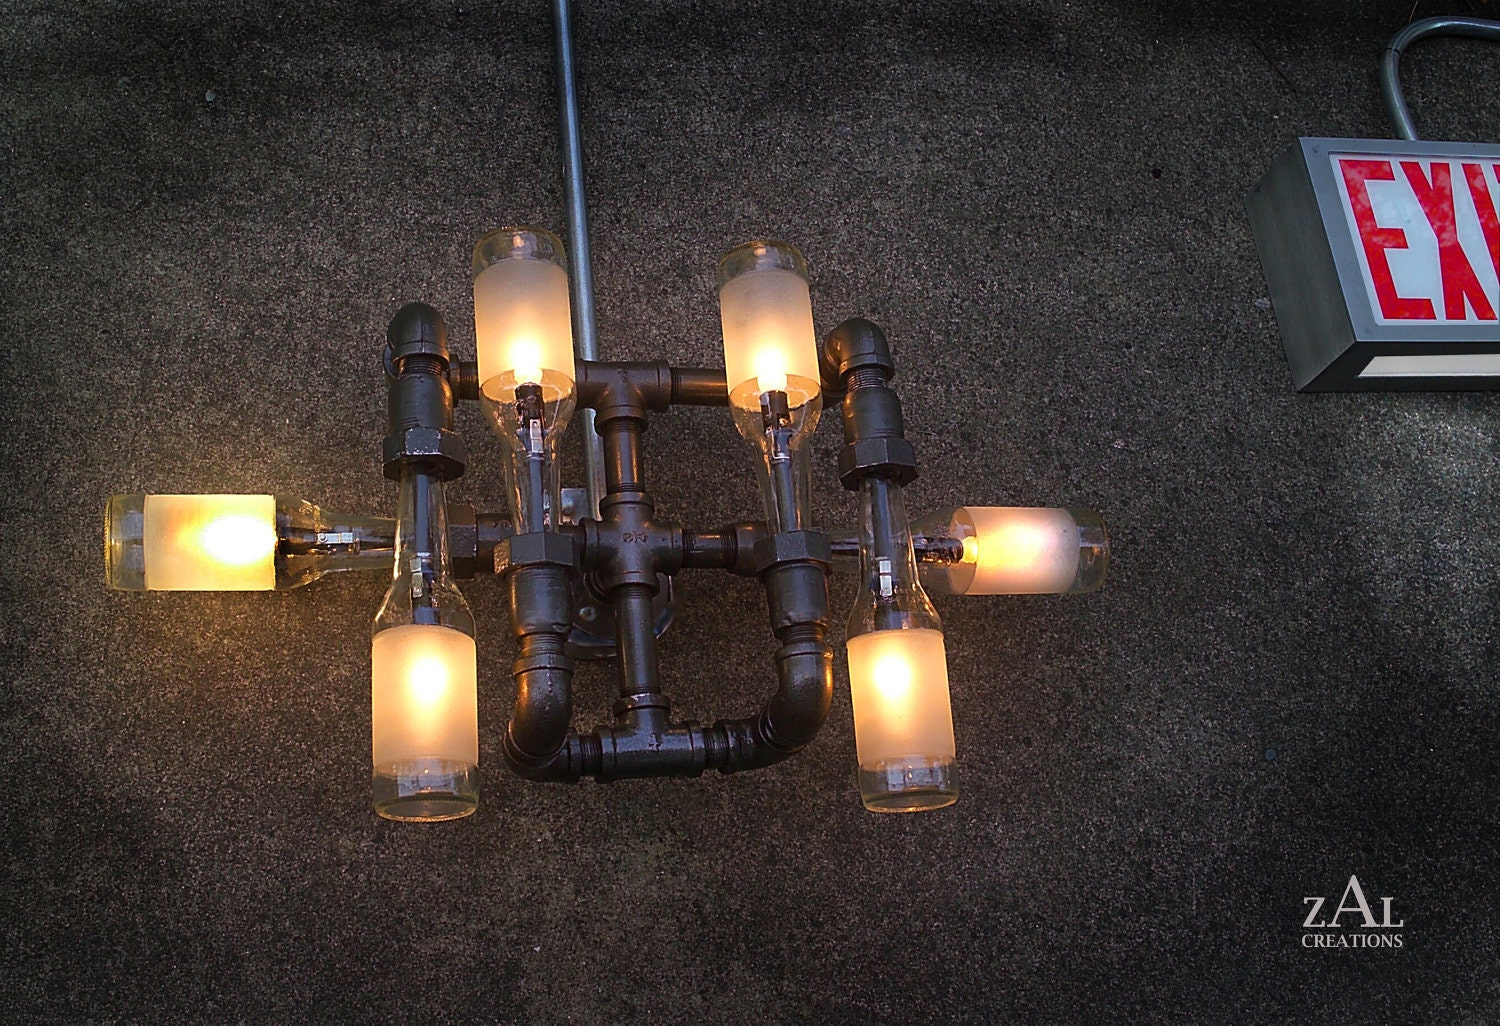 Wall light lamp beer bottles plumbing pipe fittings for Pipes and lights